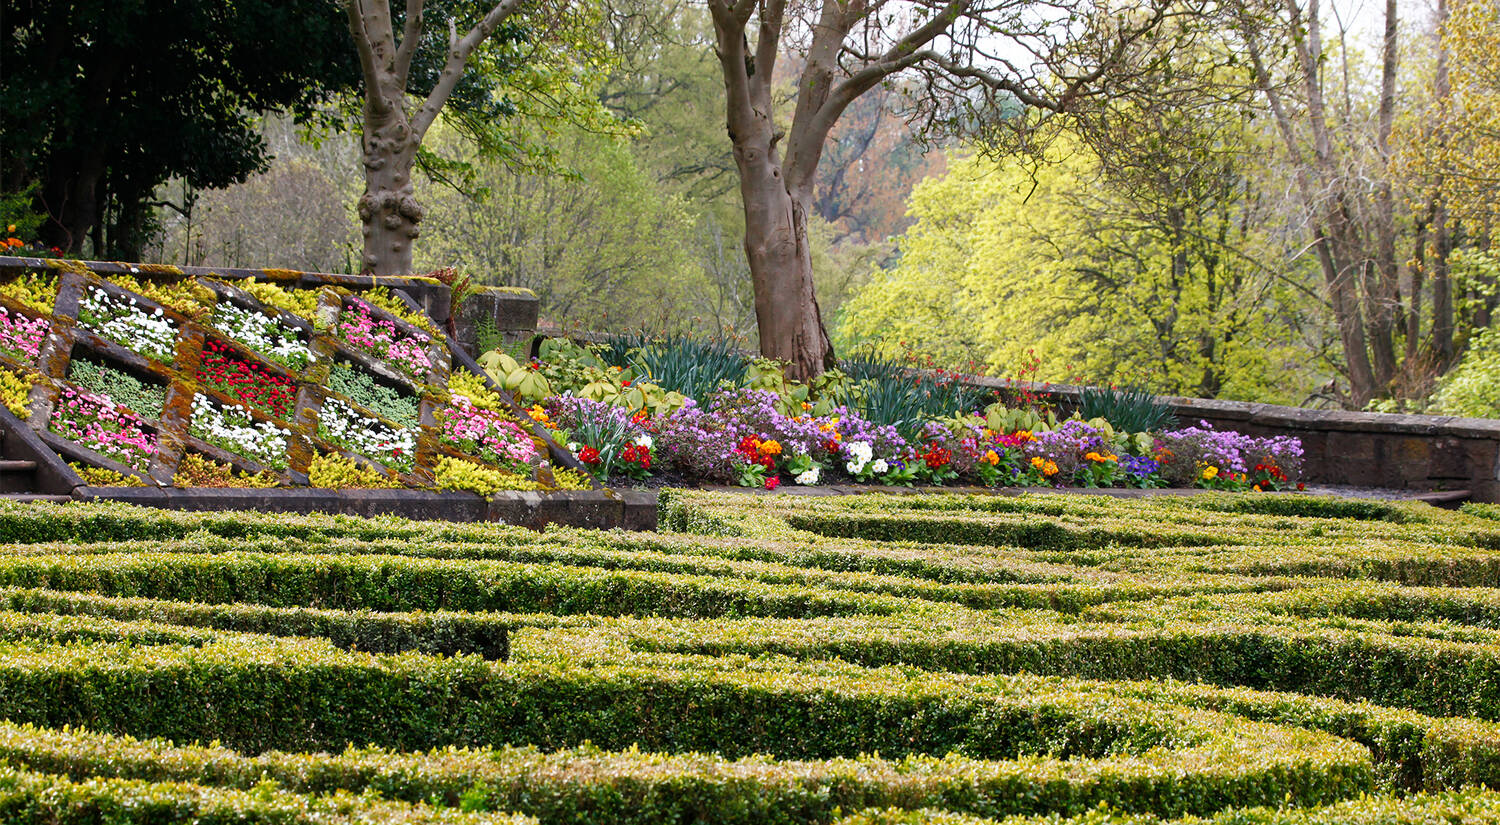 A close-up of the parterre garden at Pollok House, with brightly coloured bedding plants in the elevated beds behind.